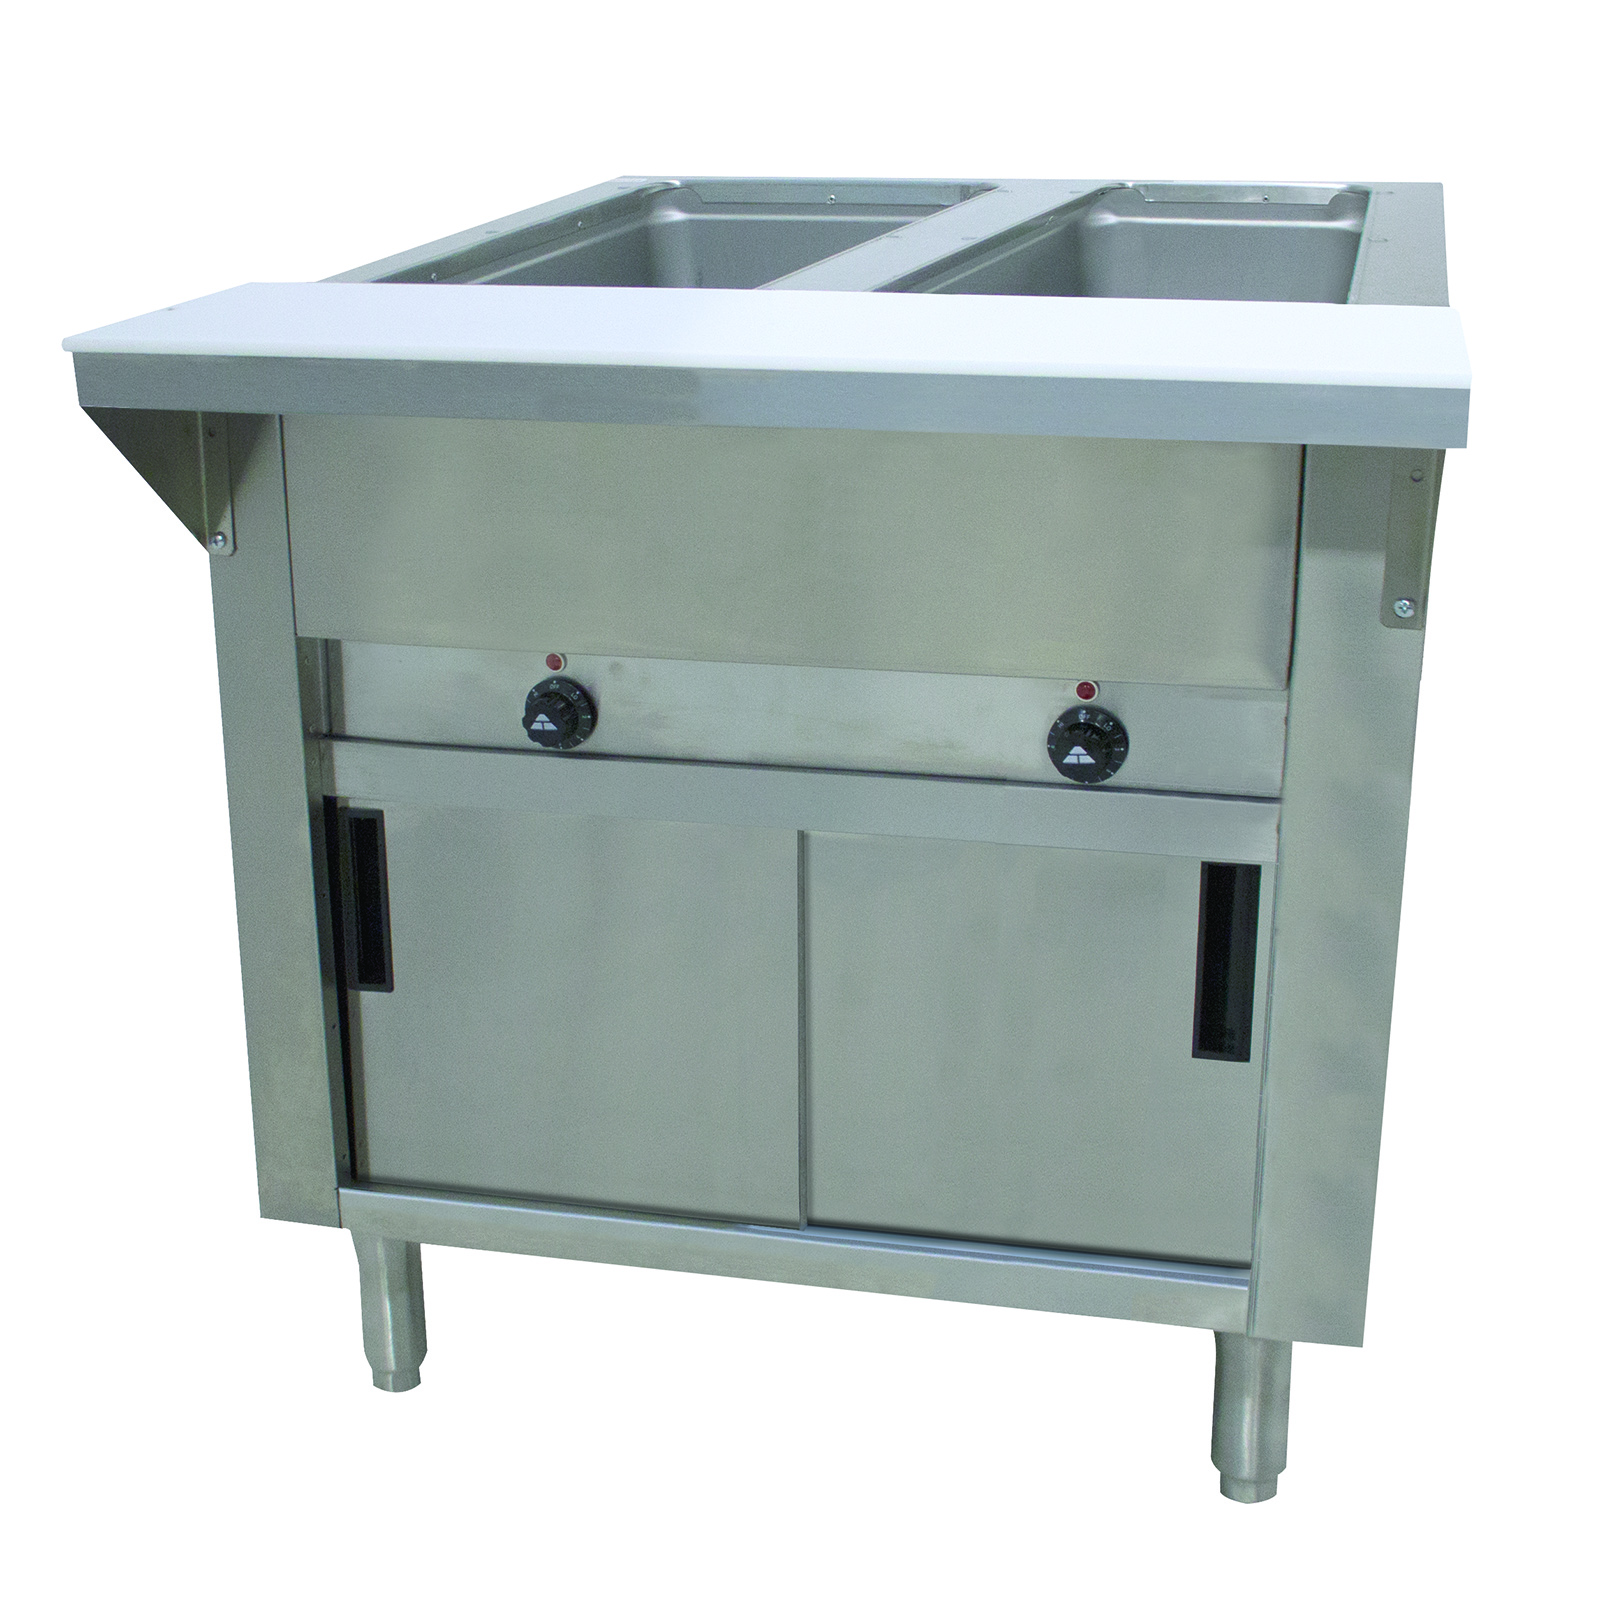 Advance Tabco SW-4E-120-DR serving counter, hot food, electric